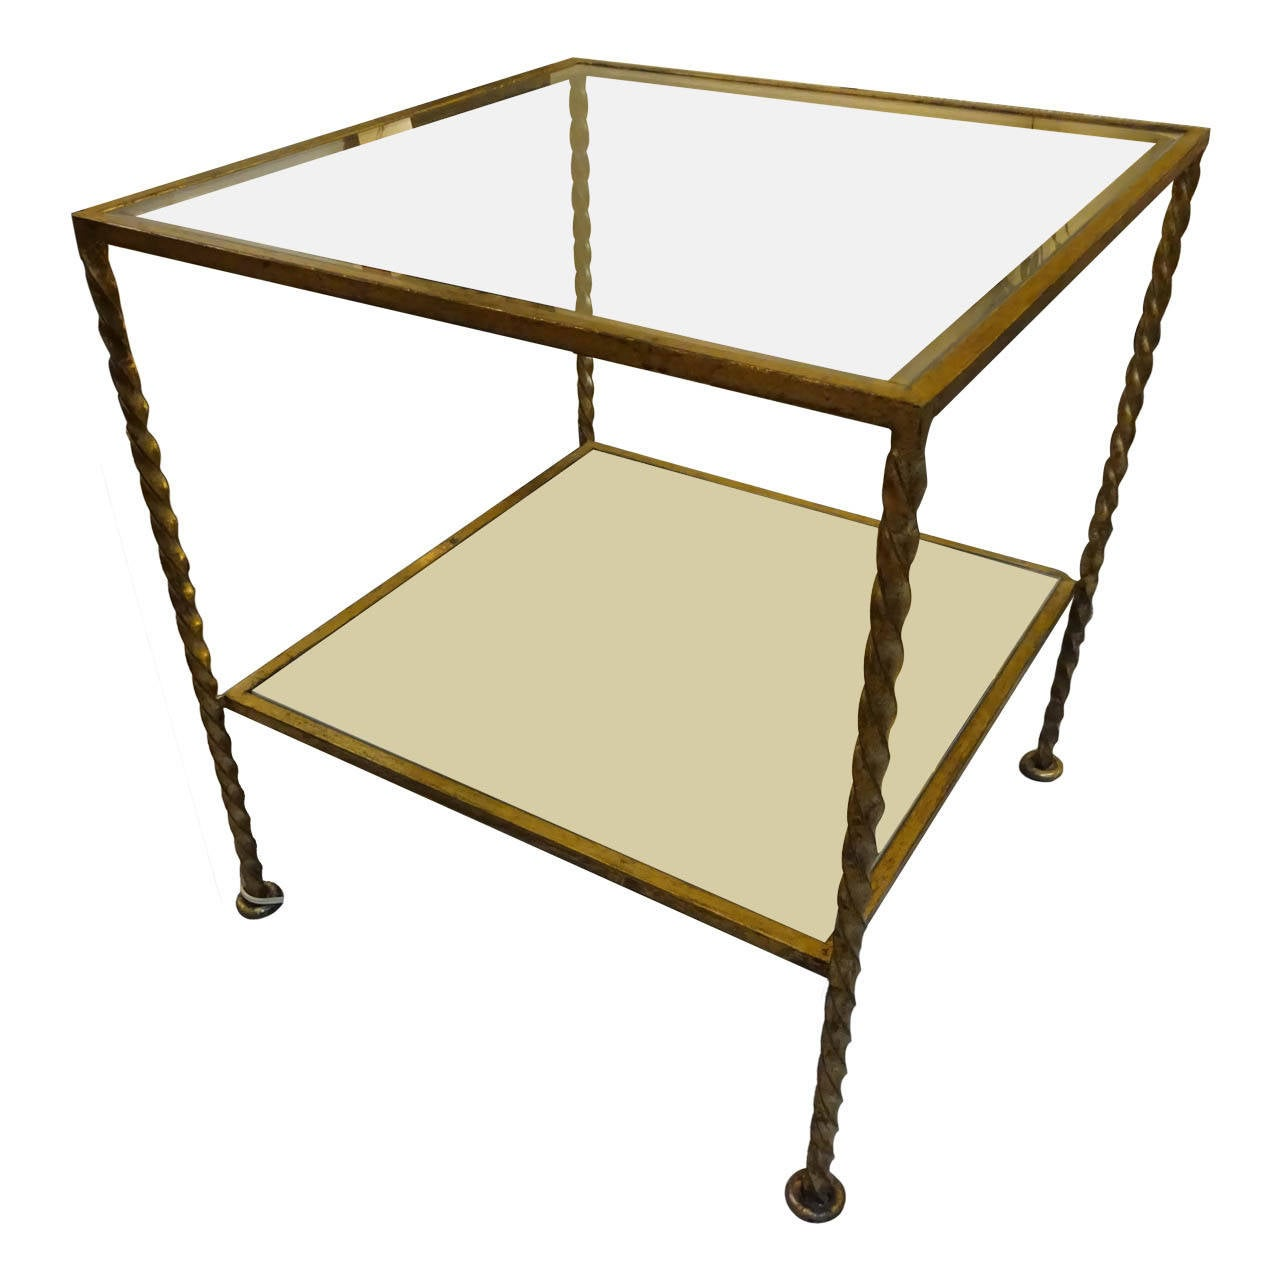 Italian Gold Gilt Iron And Glass Faux Bamboo Metal Square: Gilt Metal Glass Cube Table For Sale At 1stdibs